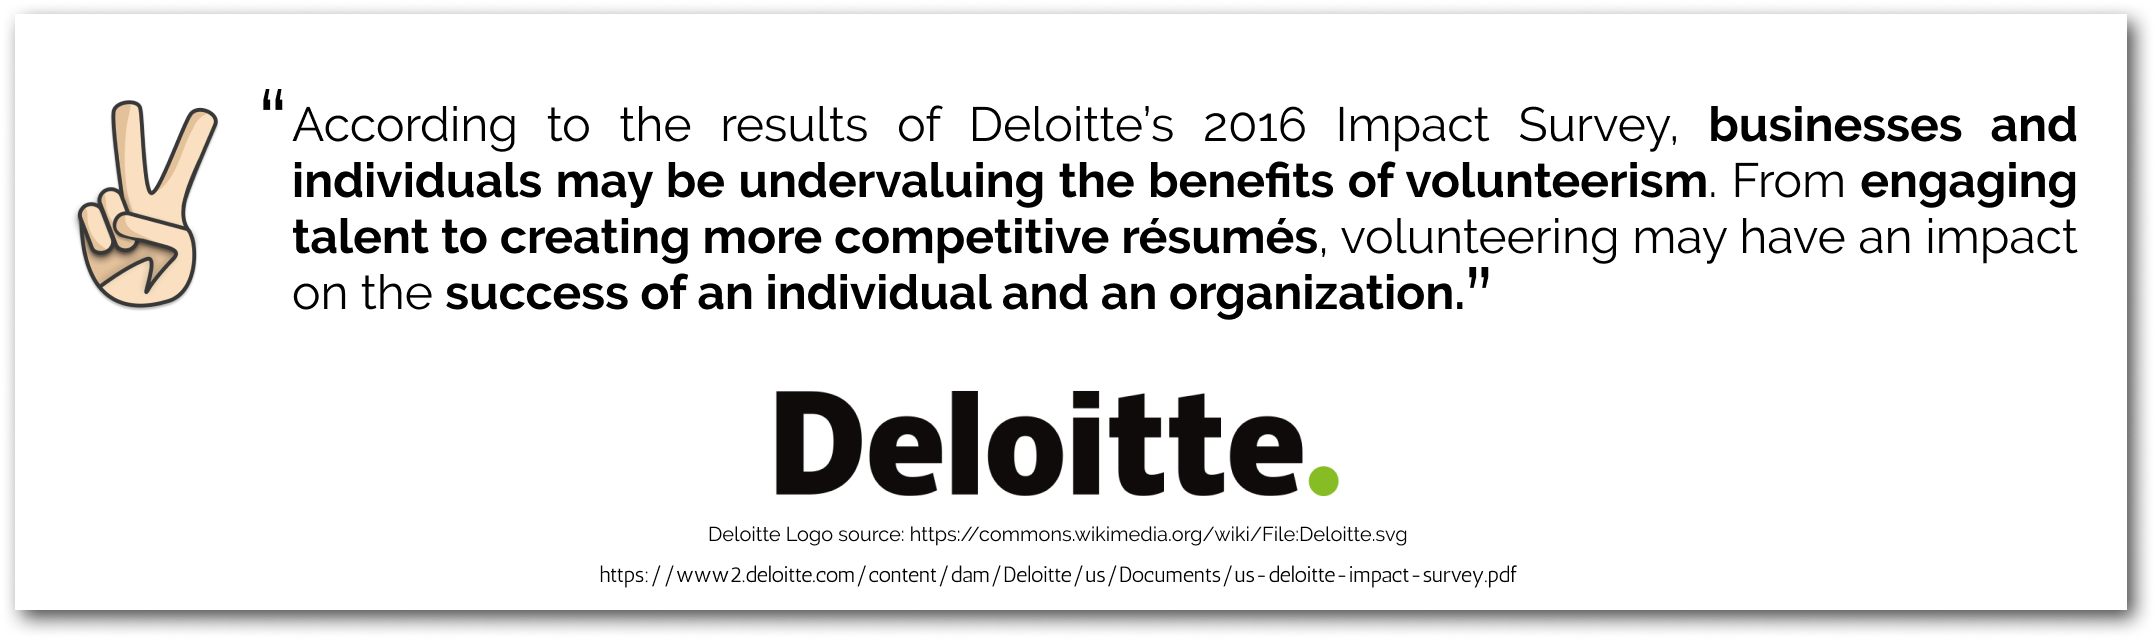 Facts from research conducted by Deloitte